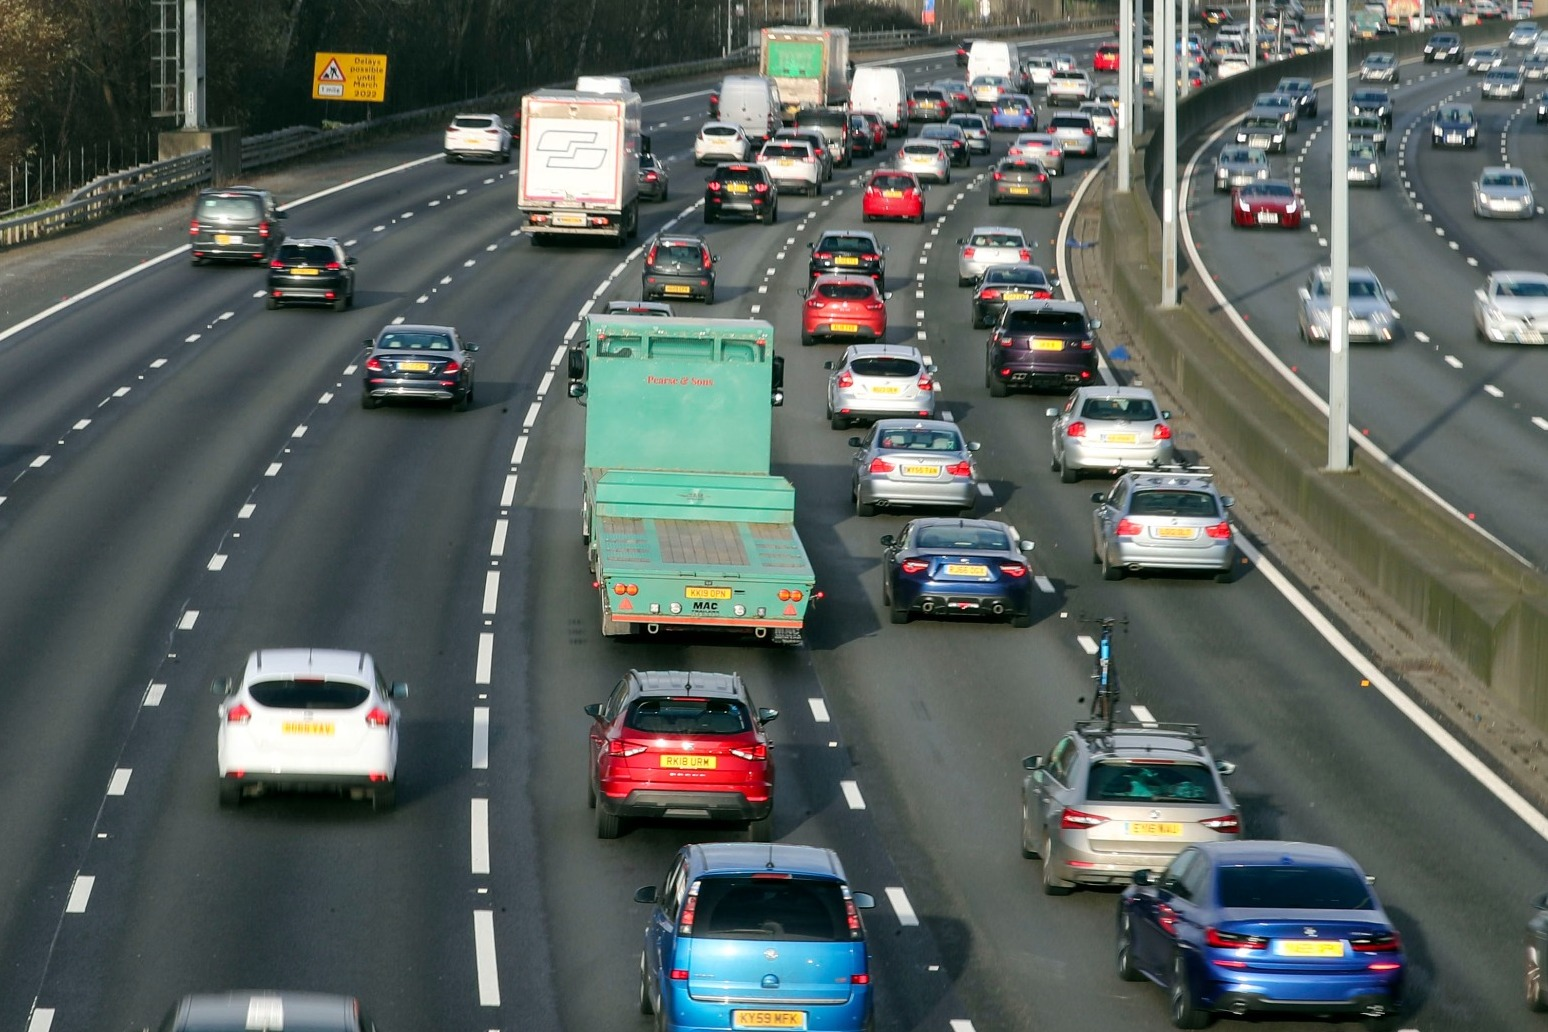 MOTORISTS CLOCKING UP 450 MILES EACH OVER CHRISTMAS - SURVEY